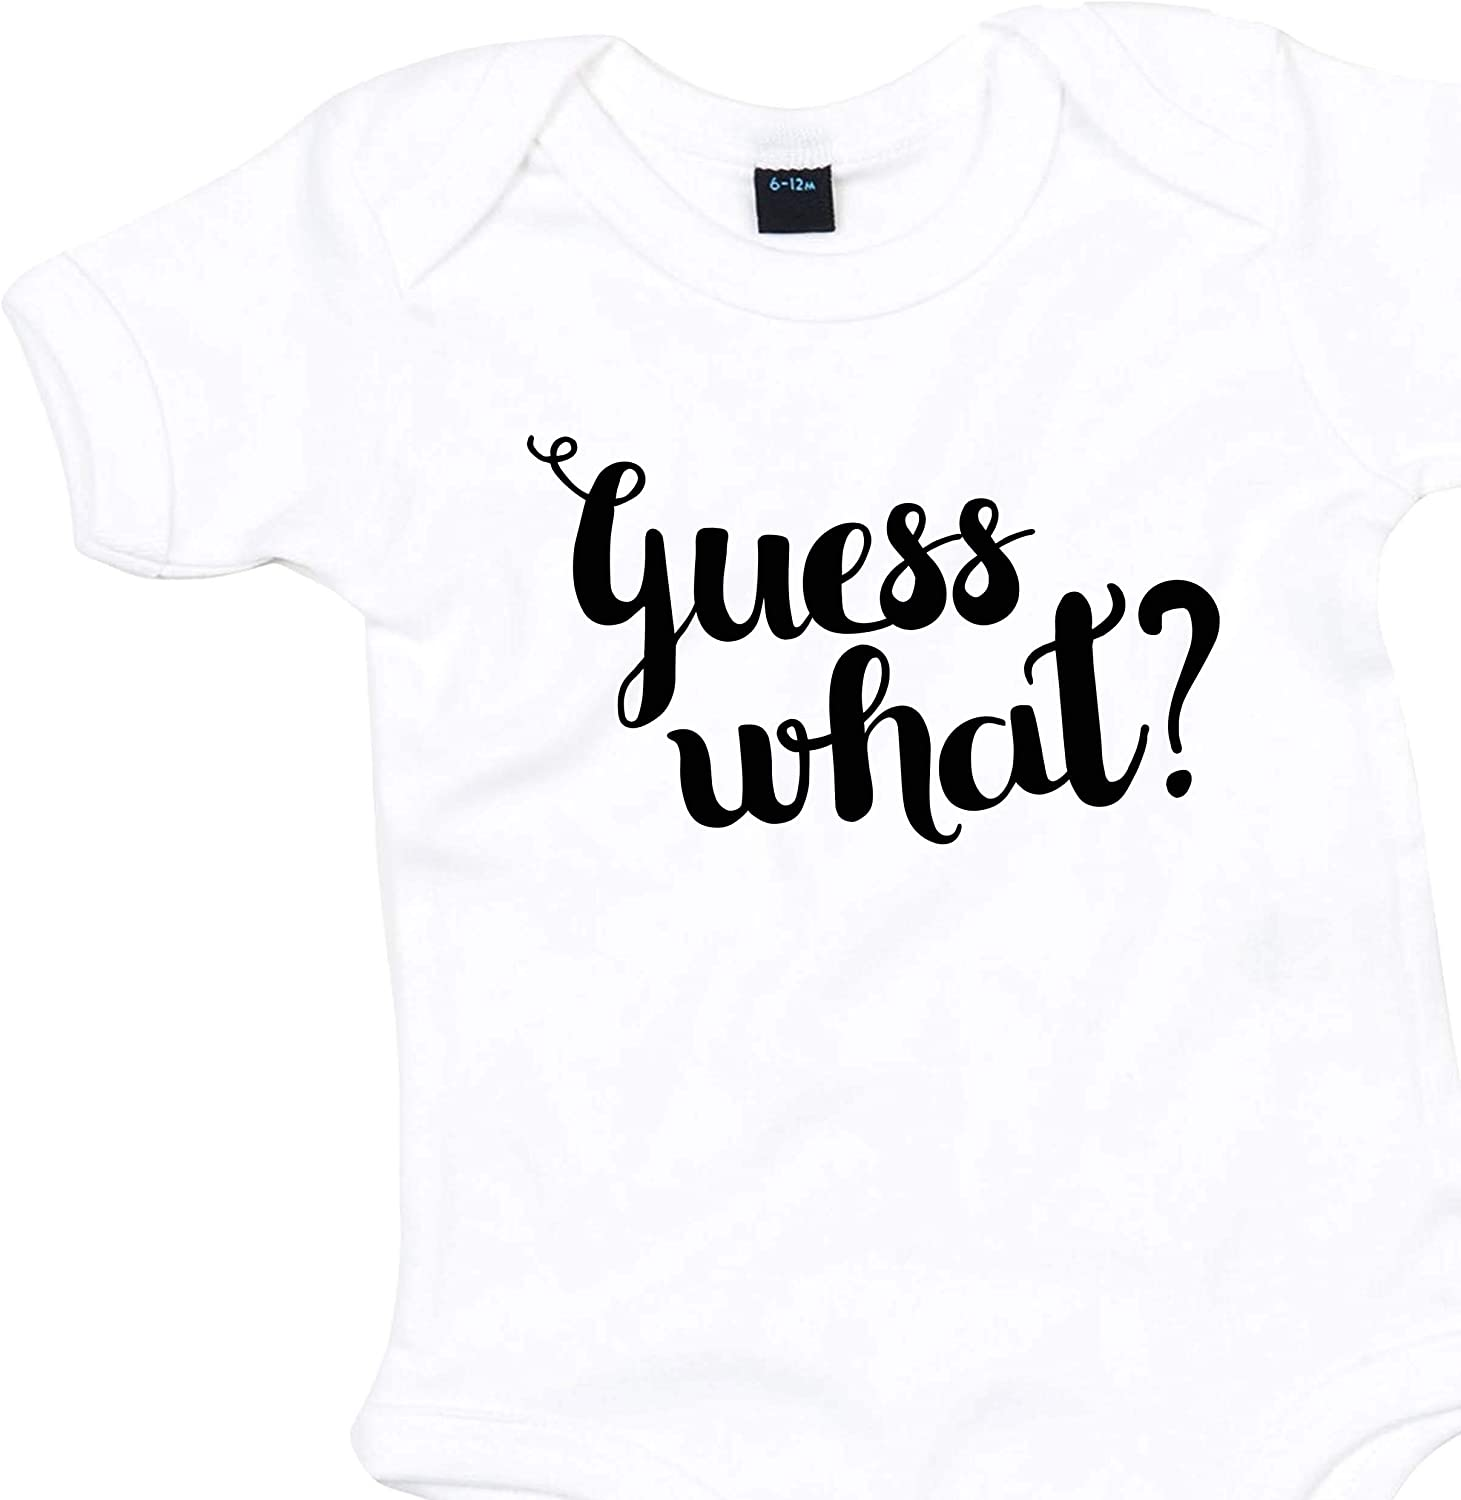 Guess What Baby Announcement Baby Grow Vest Pregnancy Reveal Boy Girl Gender Reveal Gifts for Grandparents Baby Girl Baby Boy Pregnancy Announcement